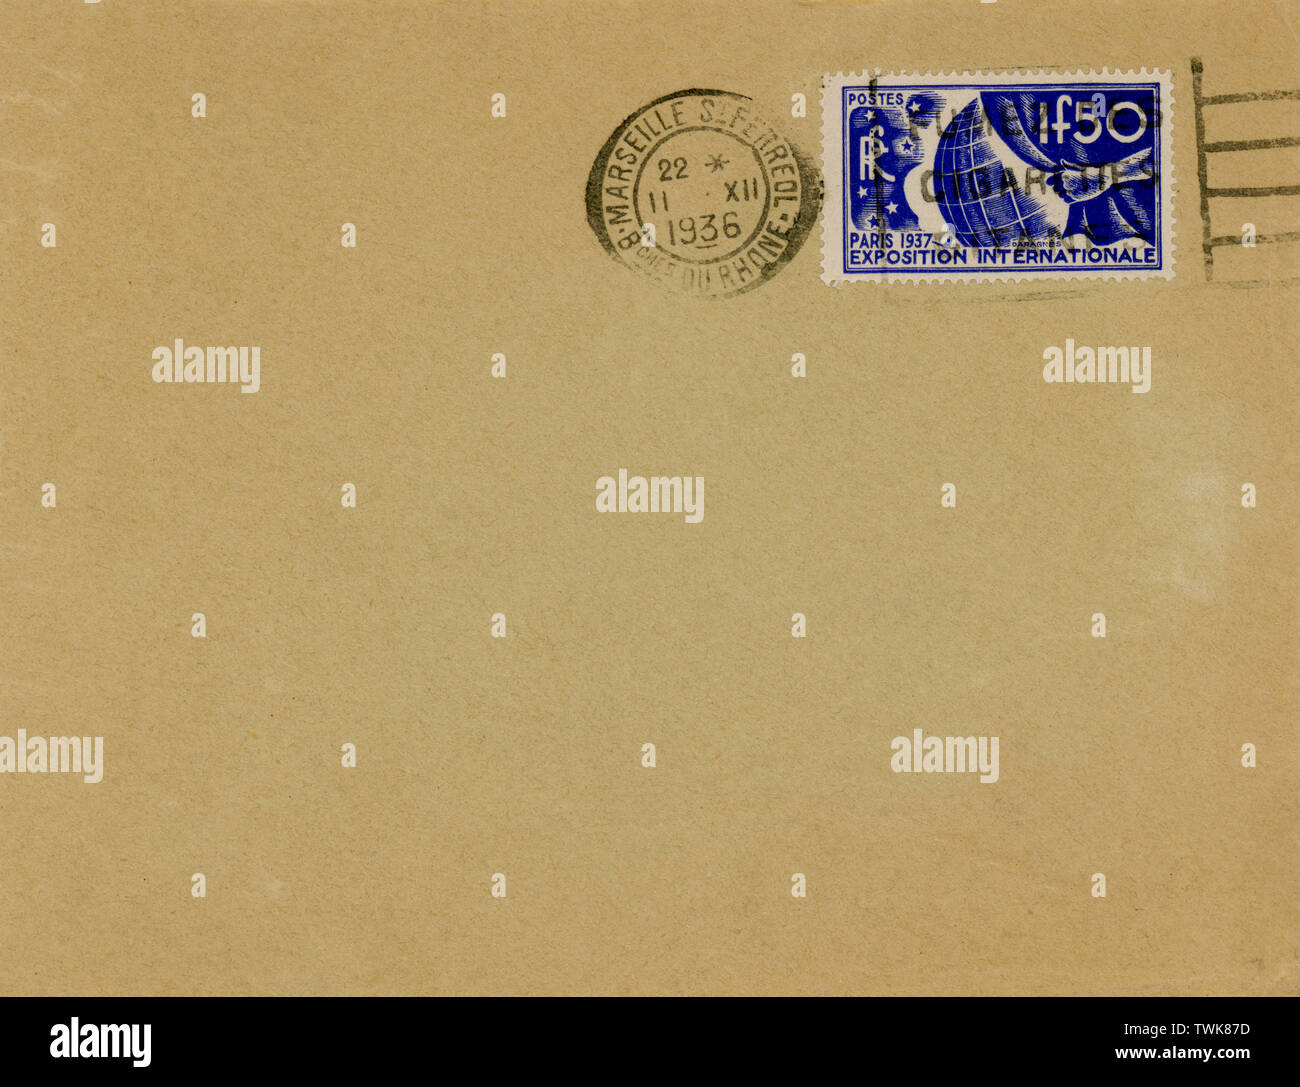 Vintage Air Mail Envelope : with stamps, marks and postal elements. - Stock Image